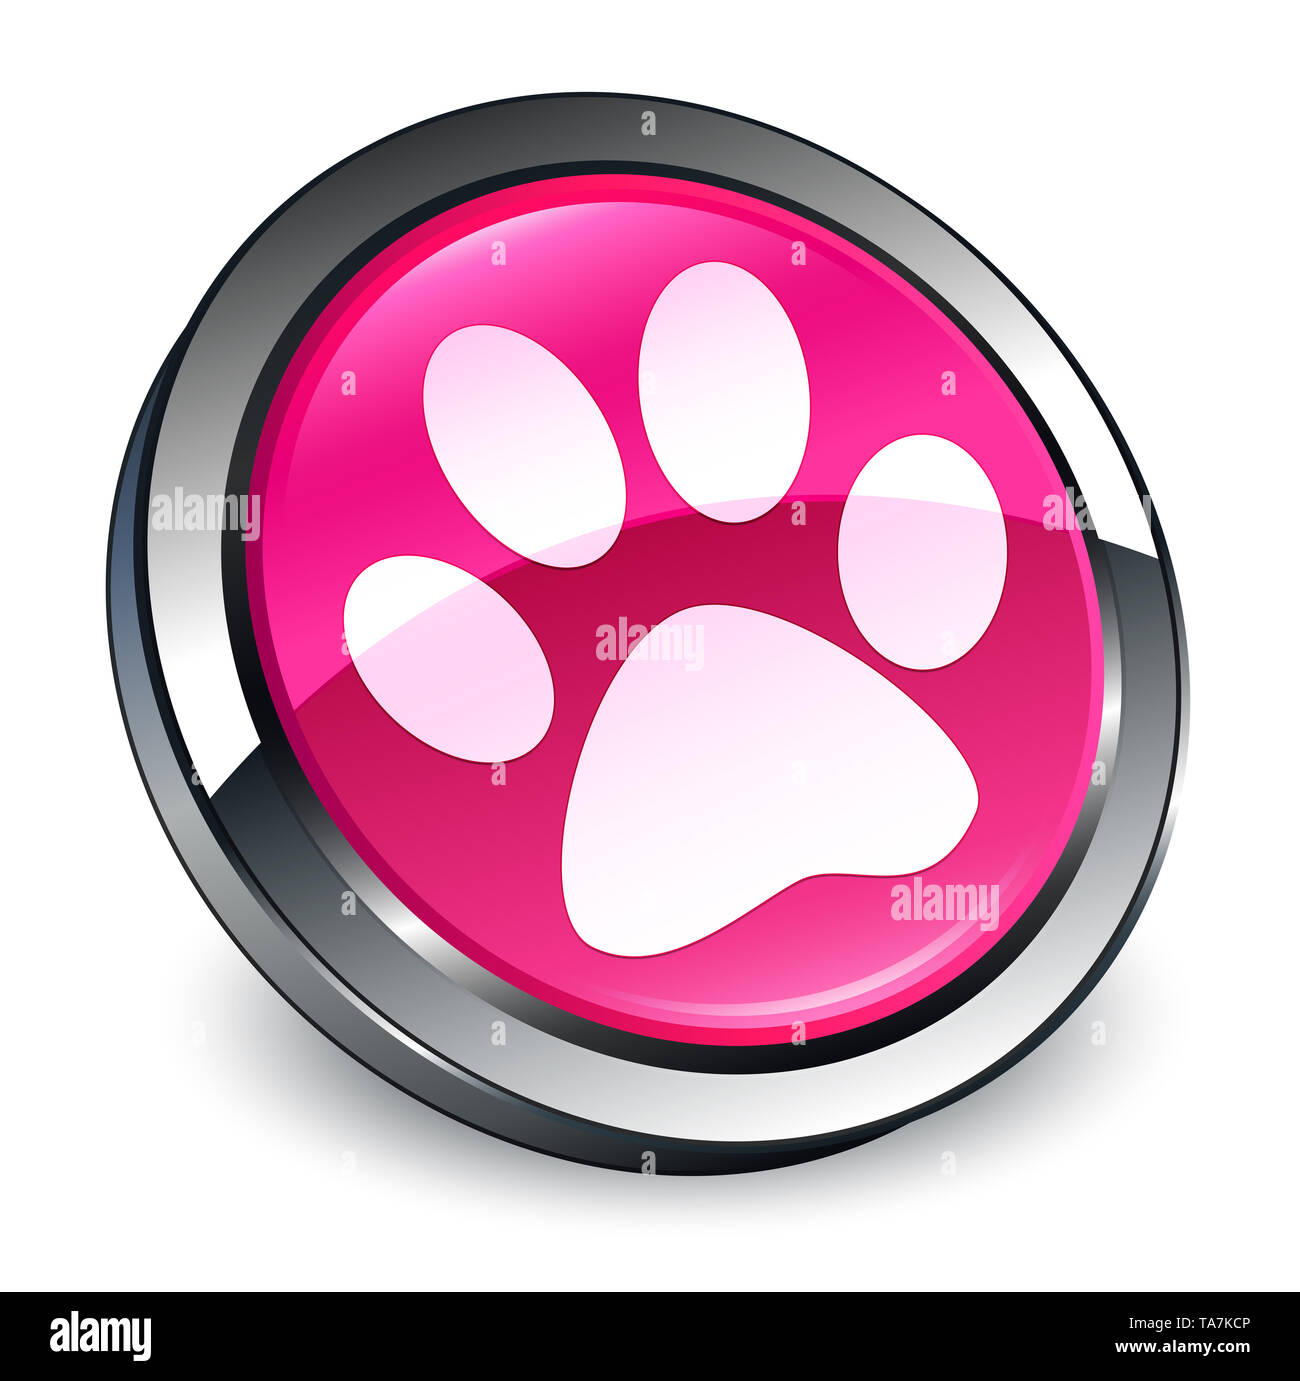 Animal footprint icon isolated on 3d pink round button abstract illustration - Stock Image